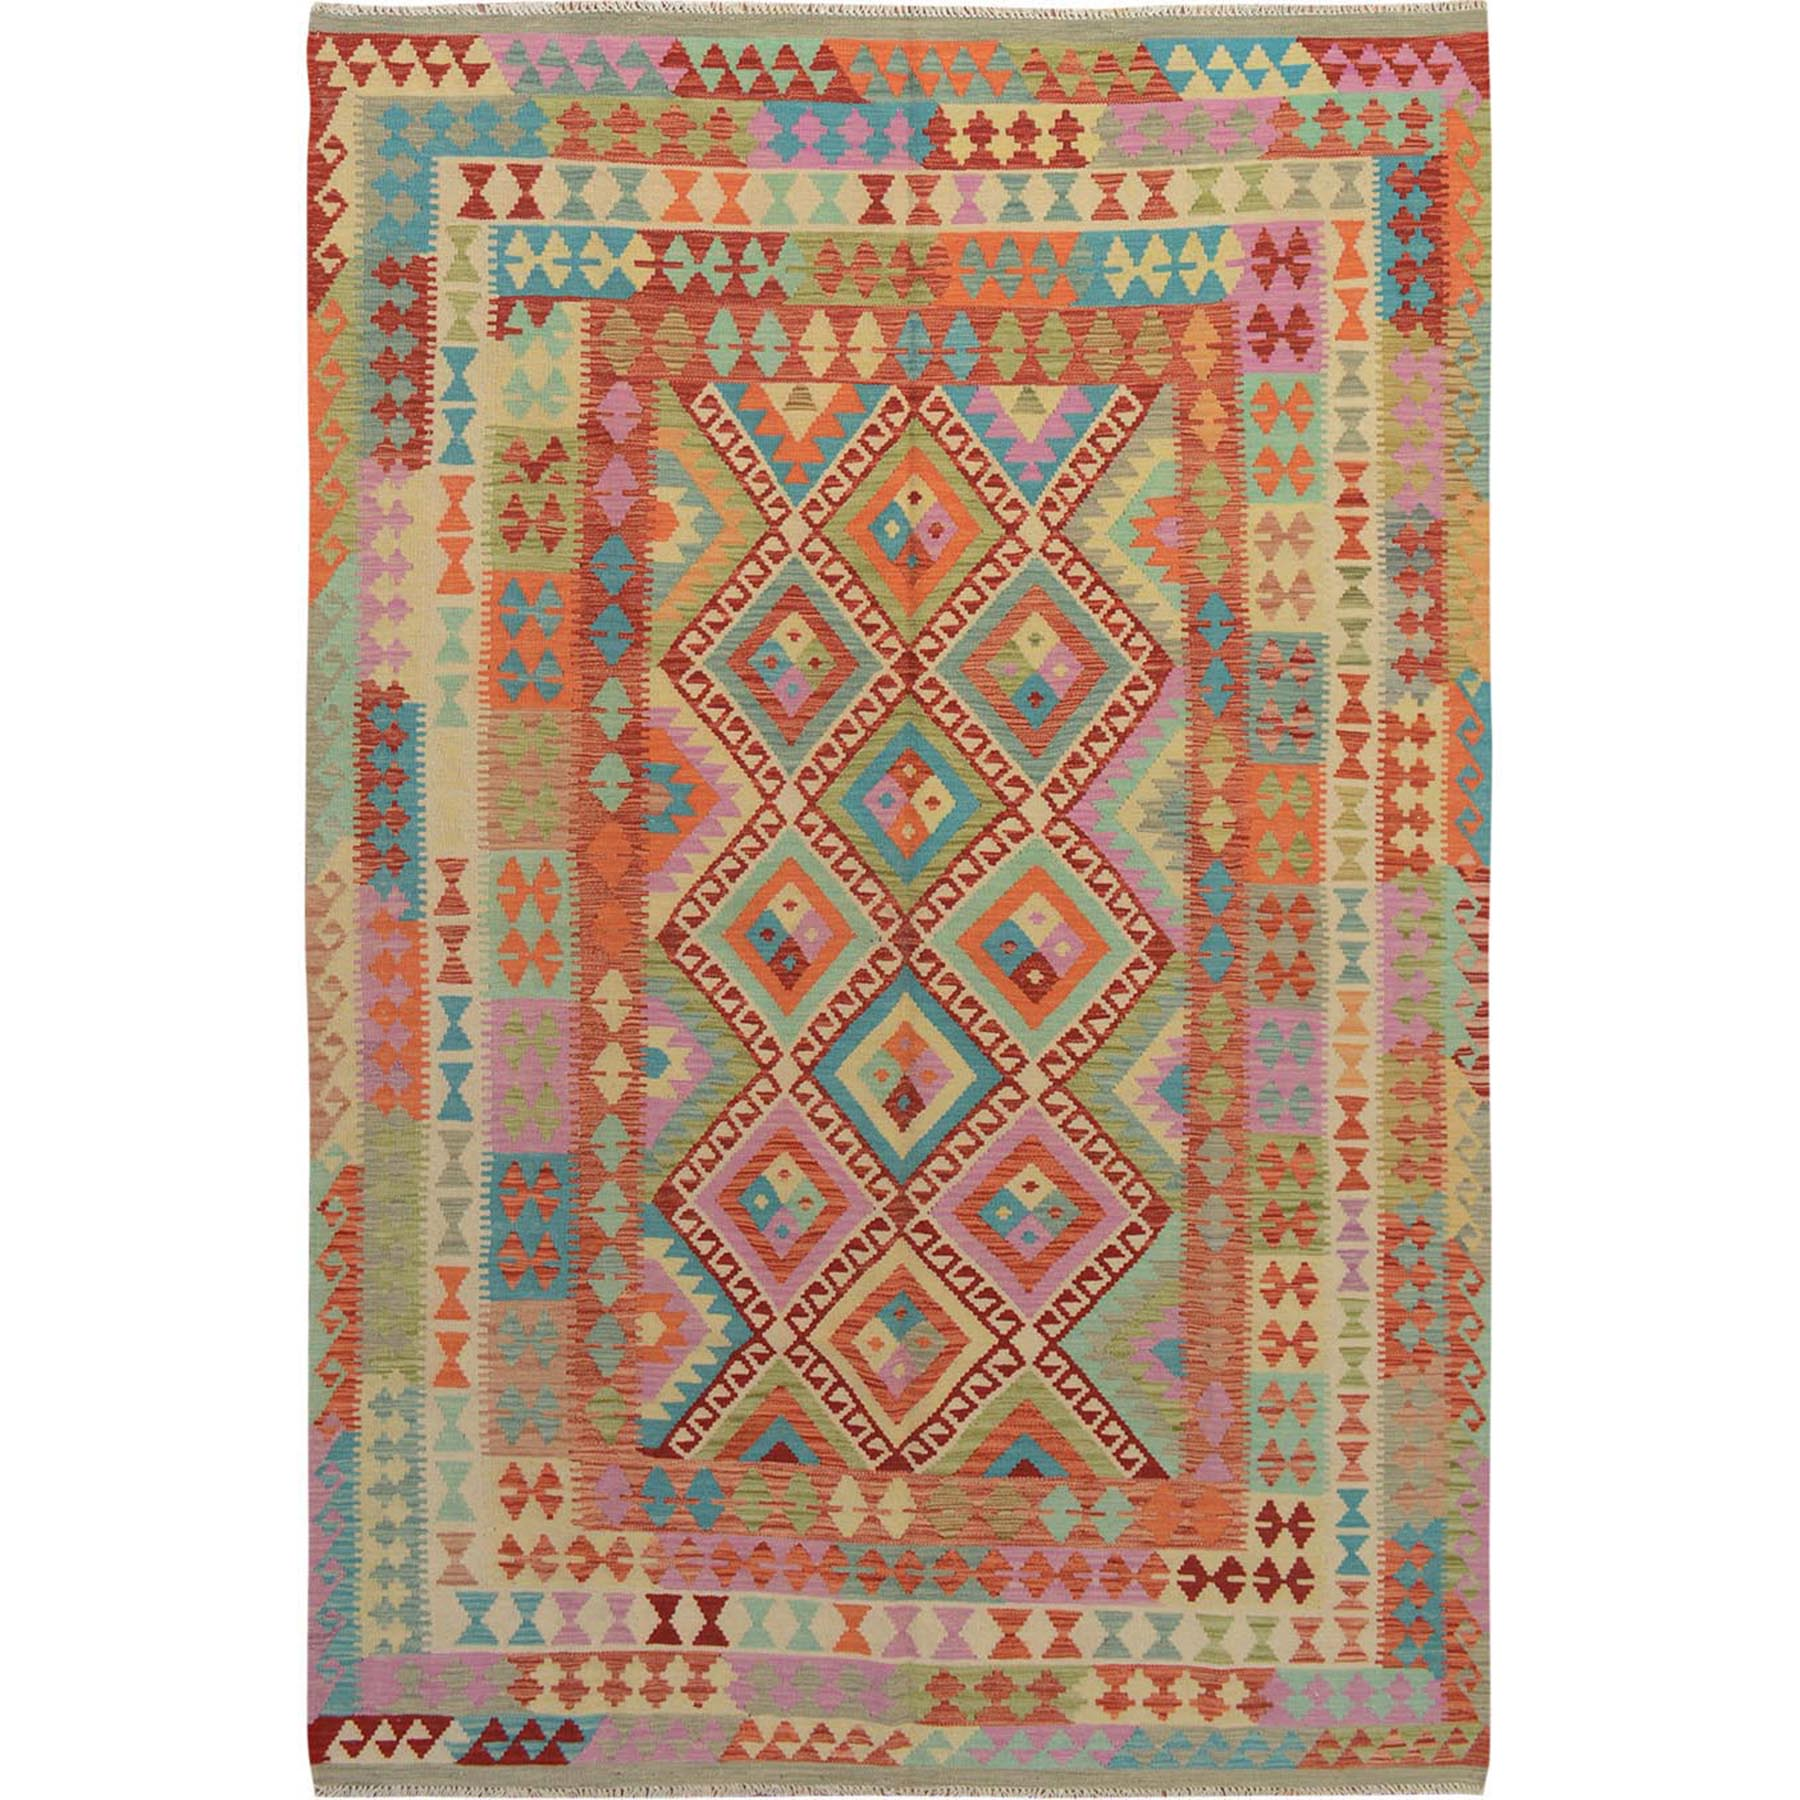 "6'6""x9'7"" Colorful Afghan Reversible Kilim Pure Wool Hand Woven Oriental Rug"